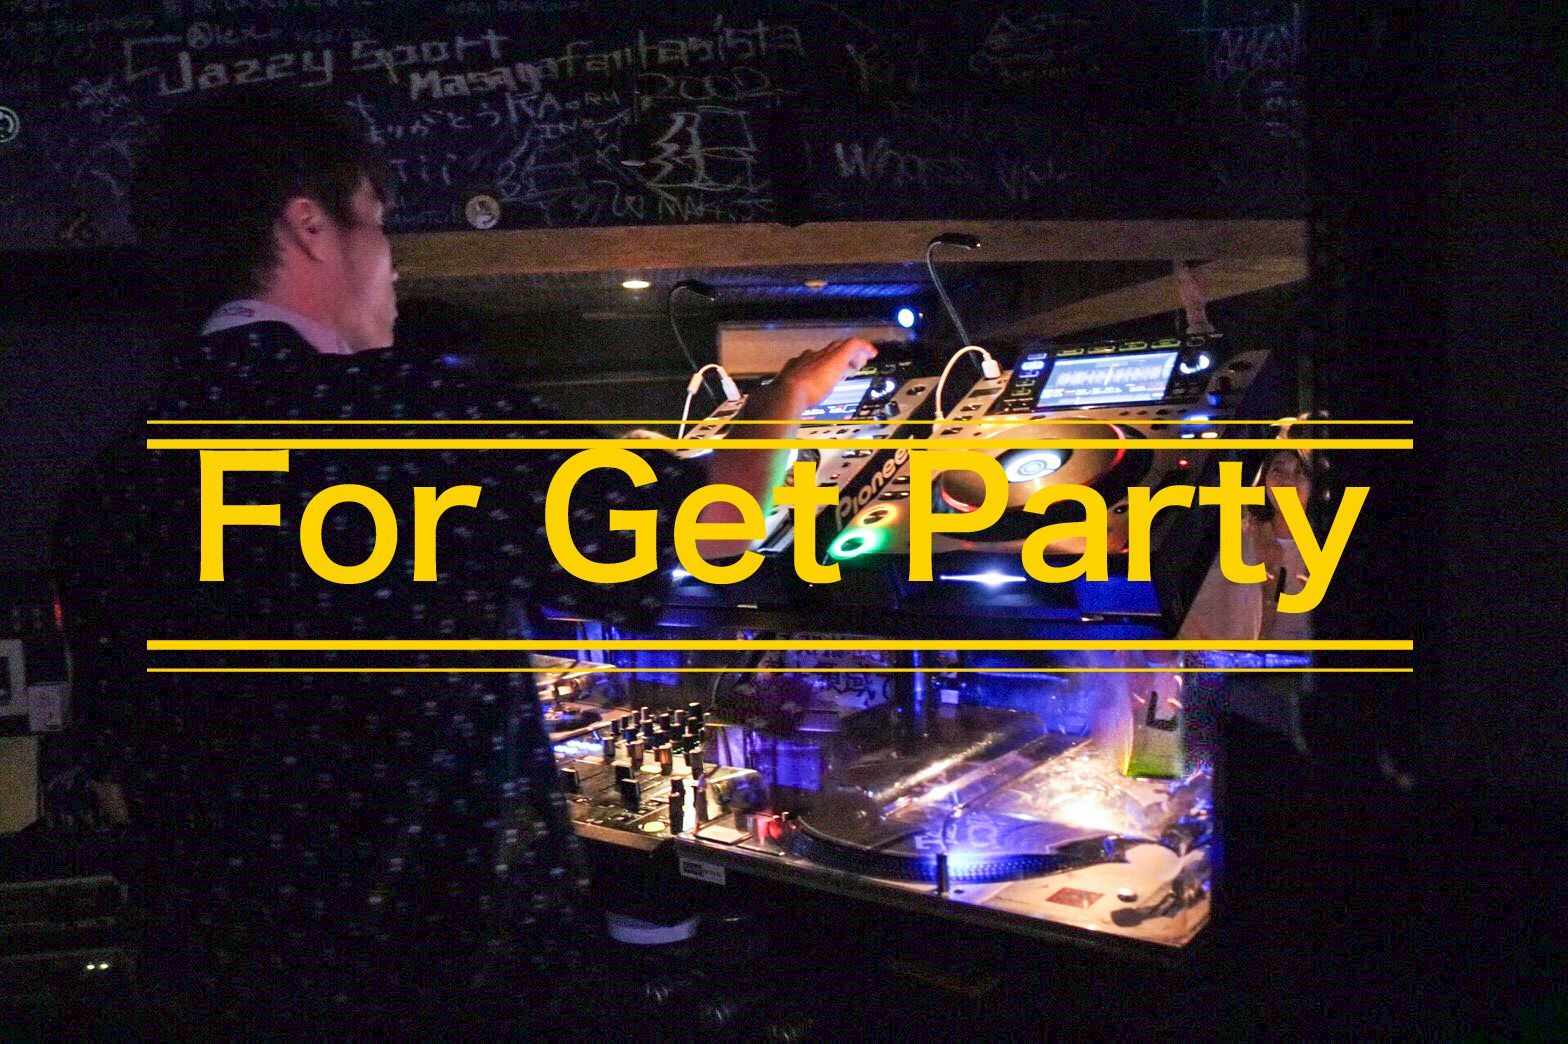 For Get Party